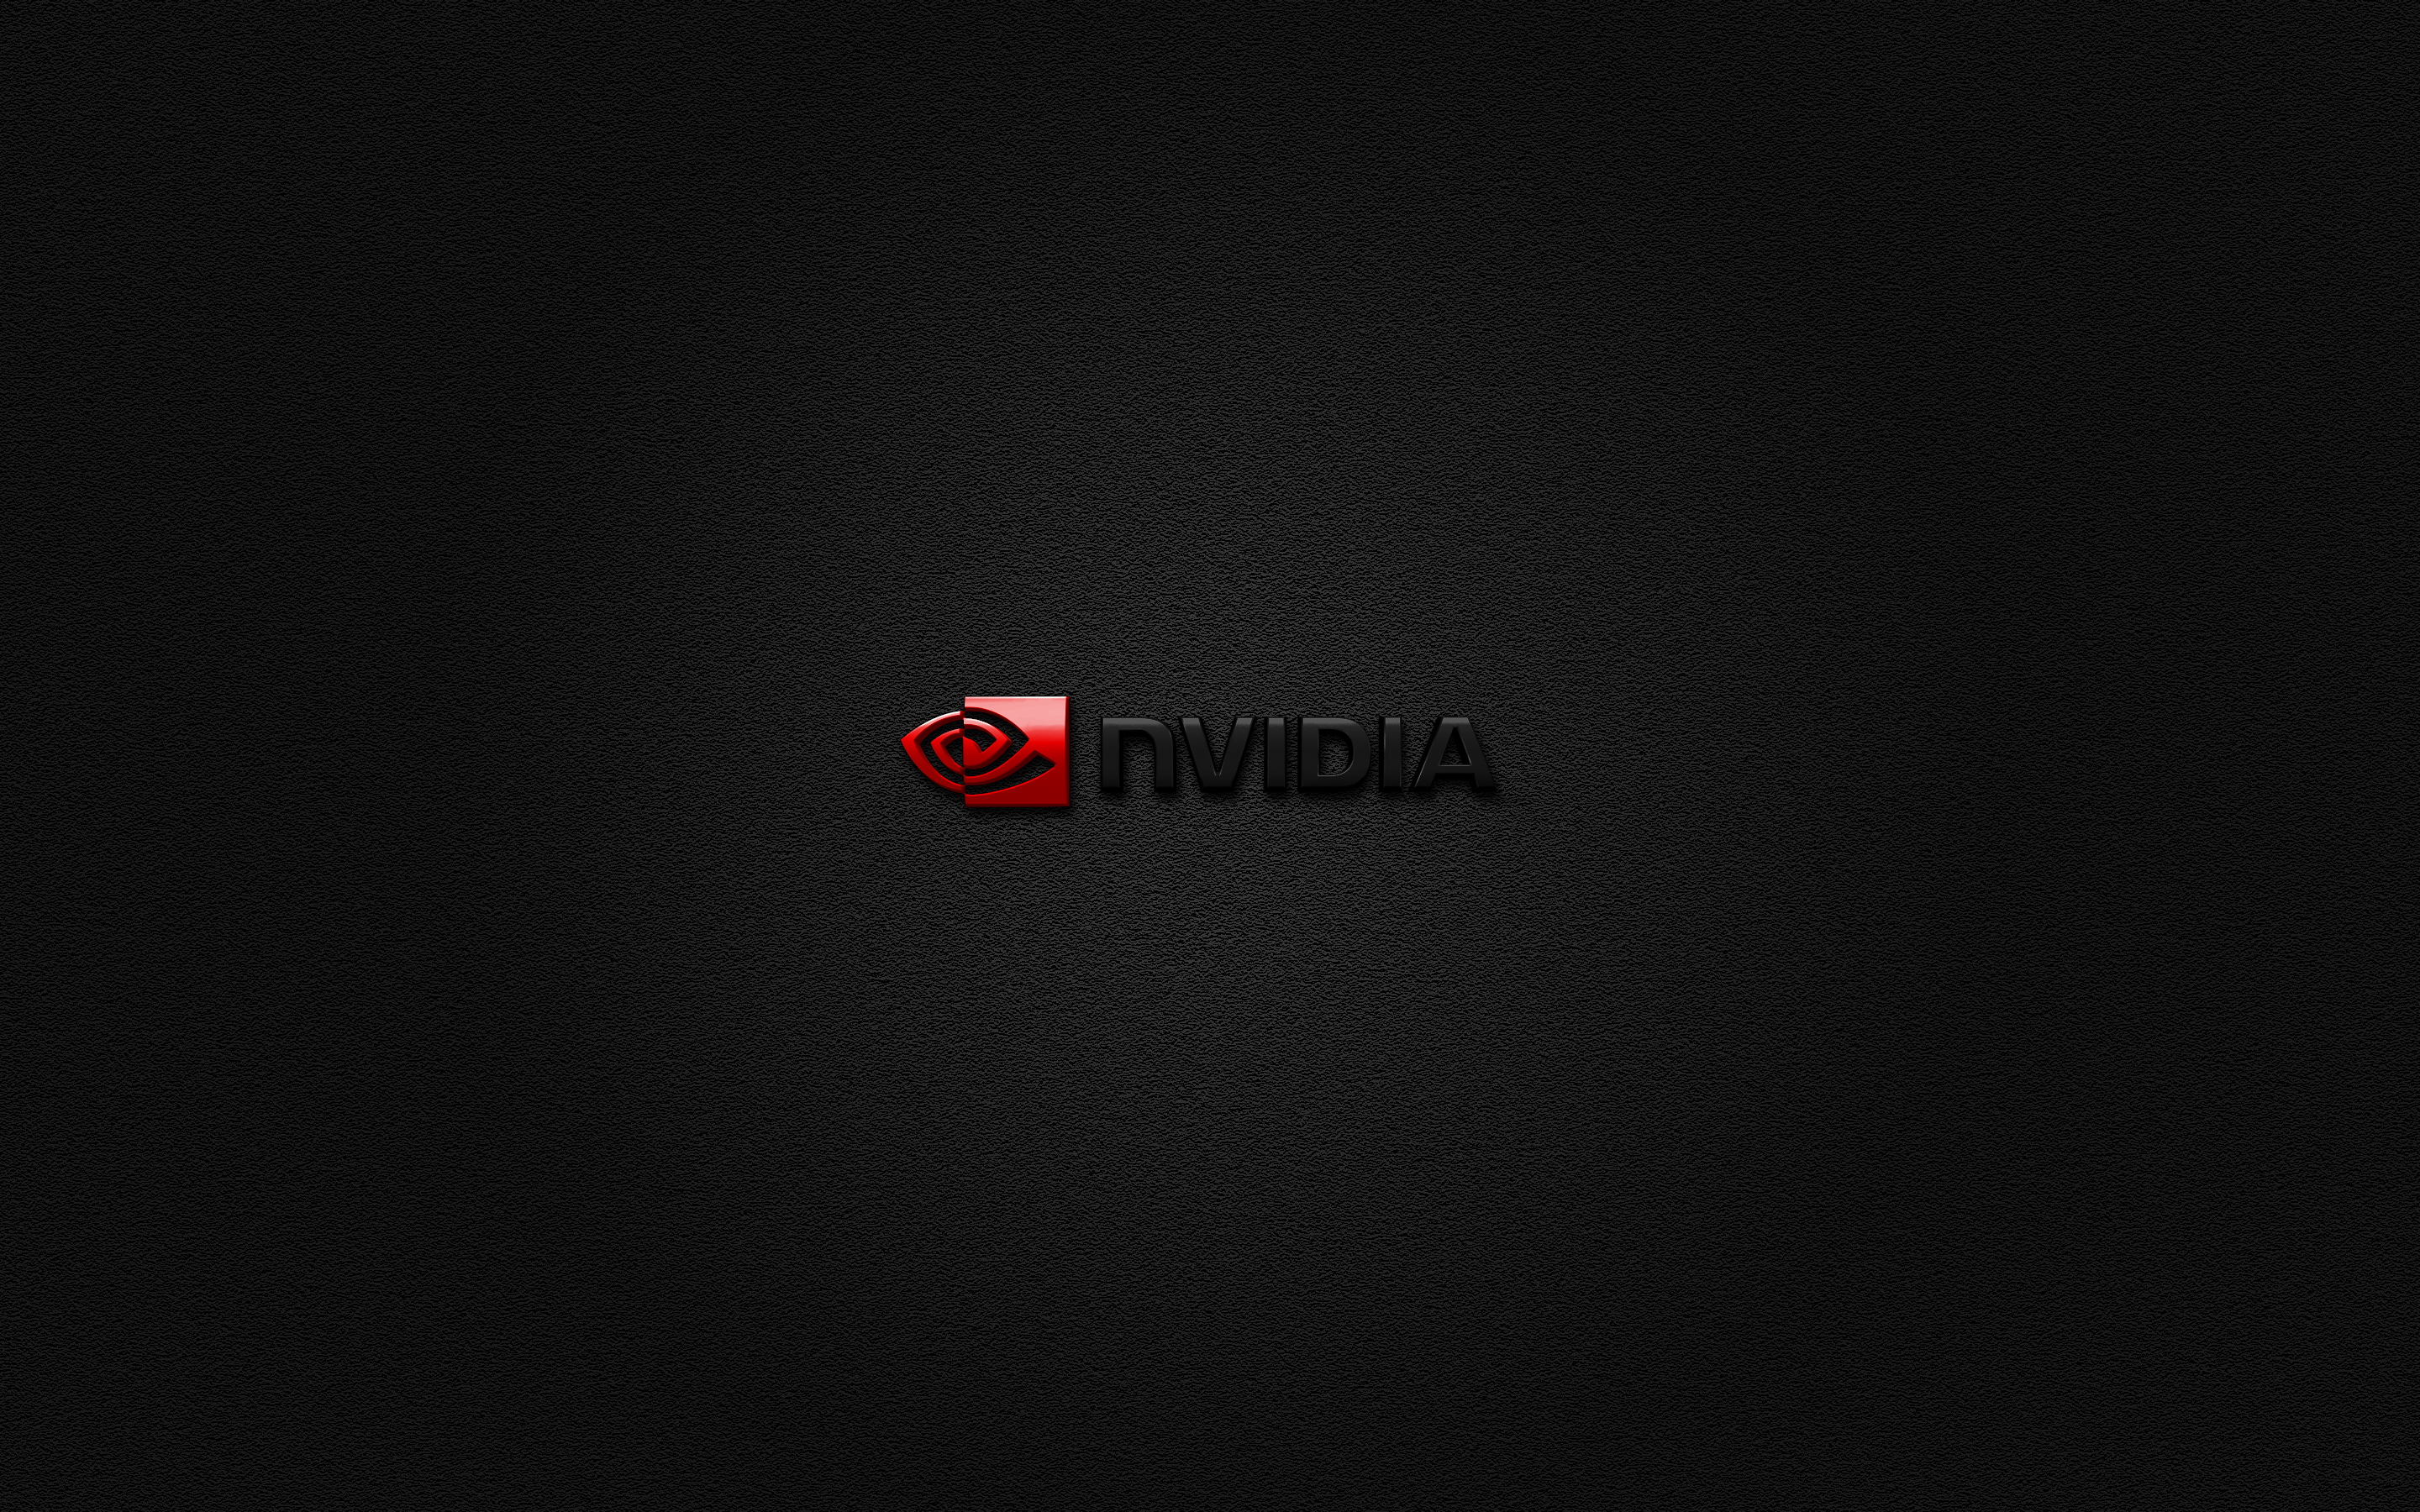 nvidia wallpaper 1080p red - photo #3